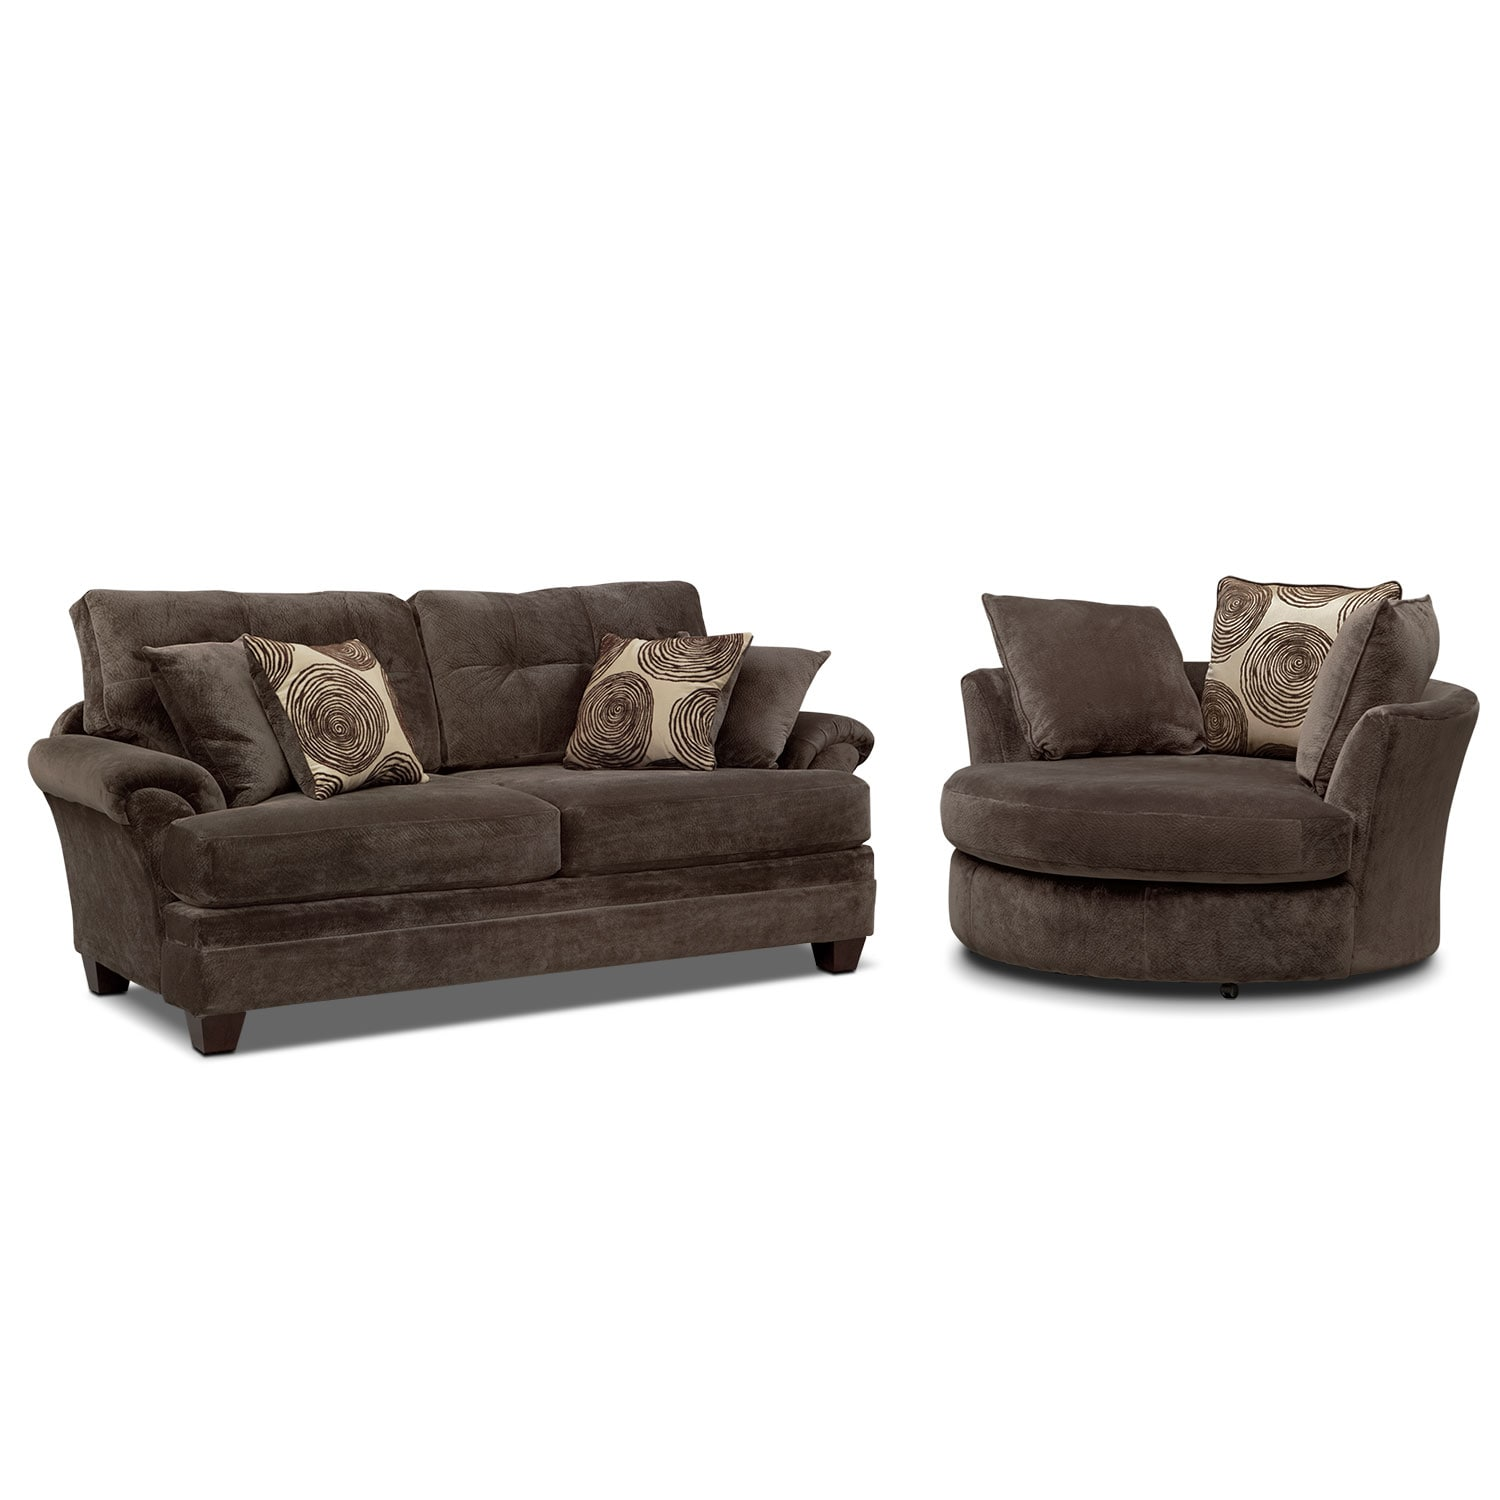 Cordelle Sofa and Swivel Chair Set Chocolate